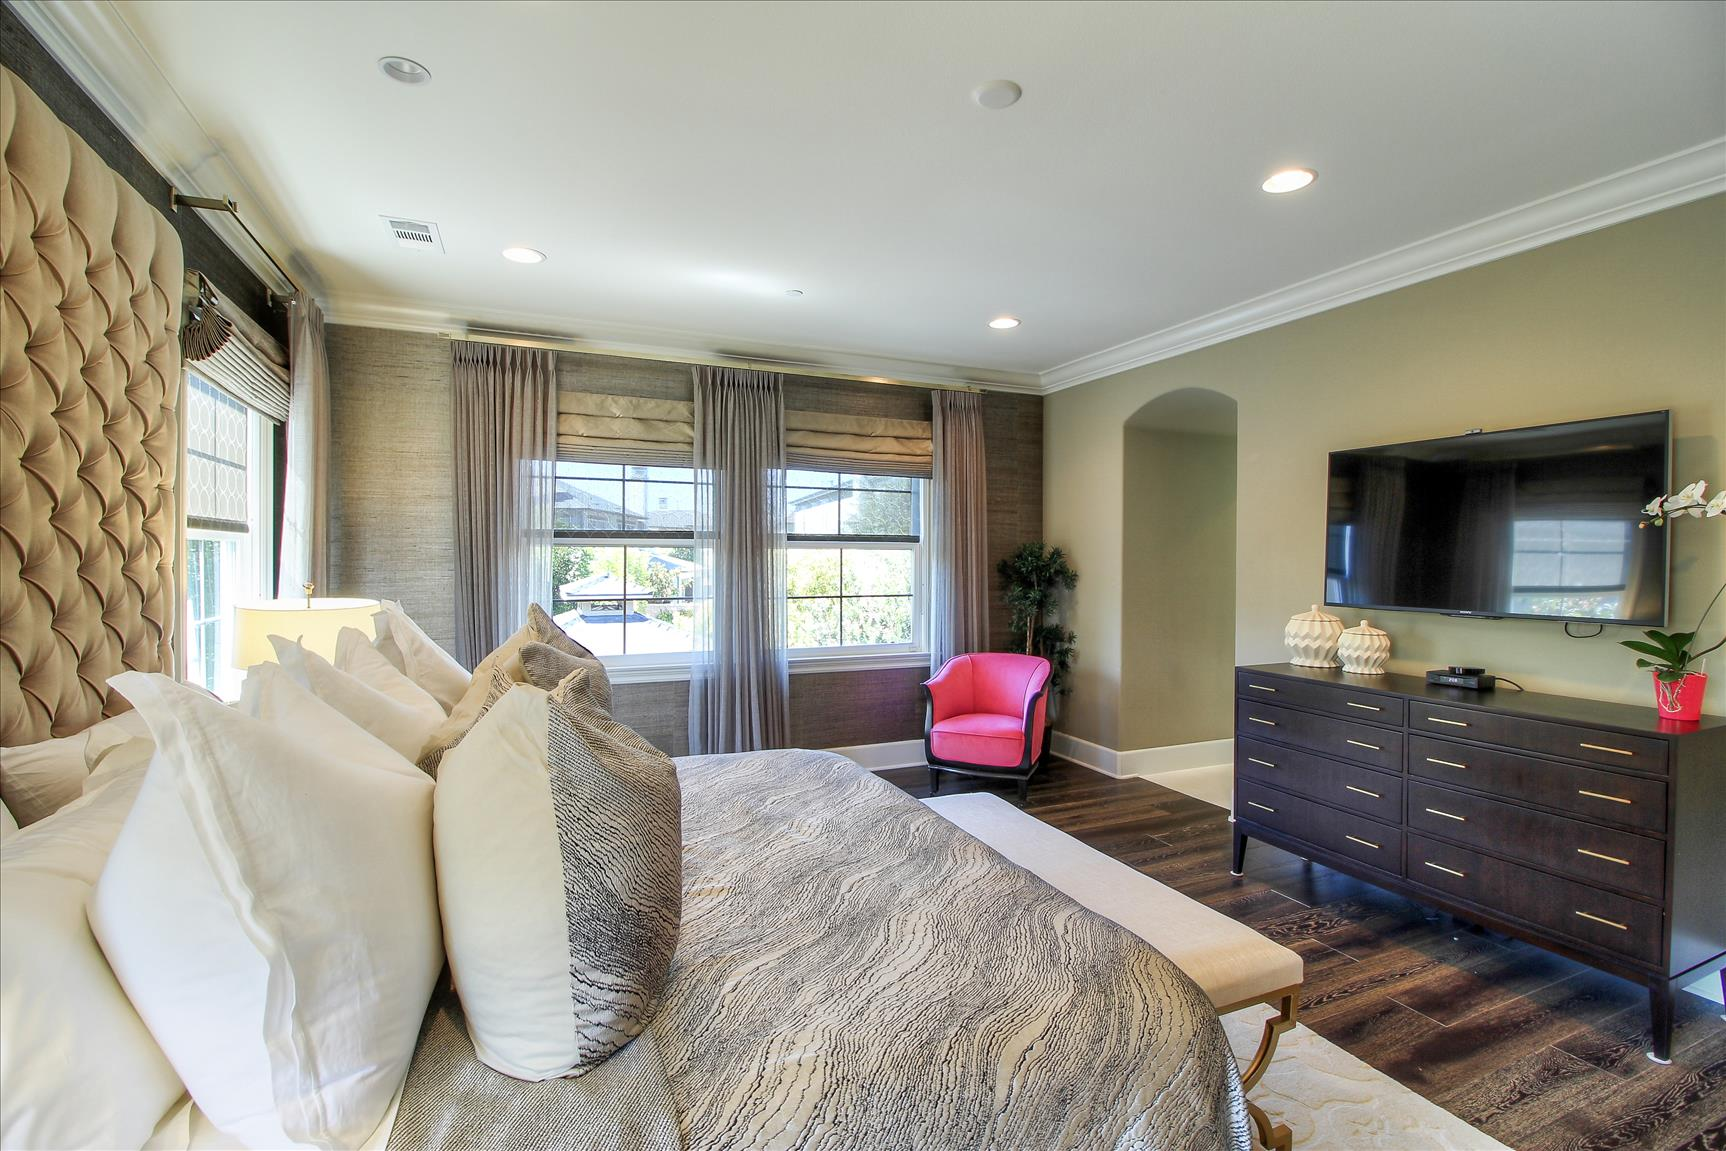 17471 Kennebunk Ln, Huntington Beach, CA  9264951.jpg